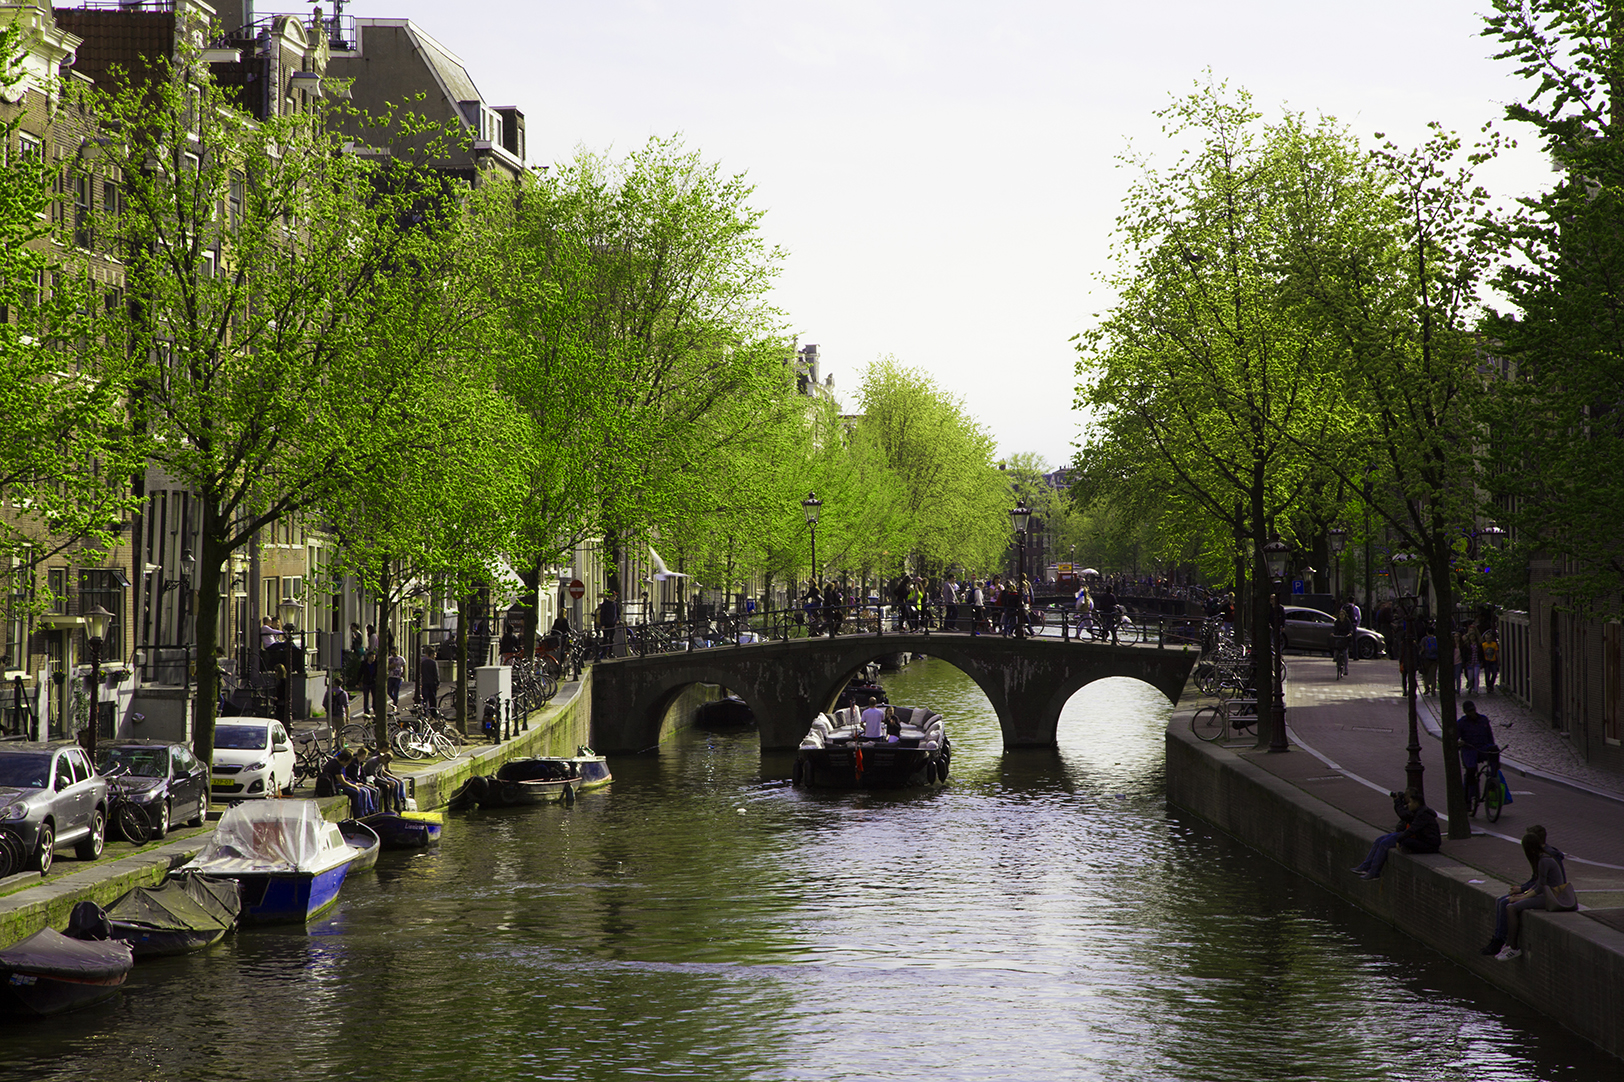 Amsterdam, you know, boats and hoes